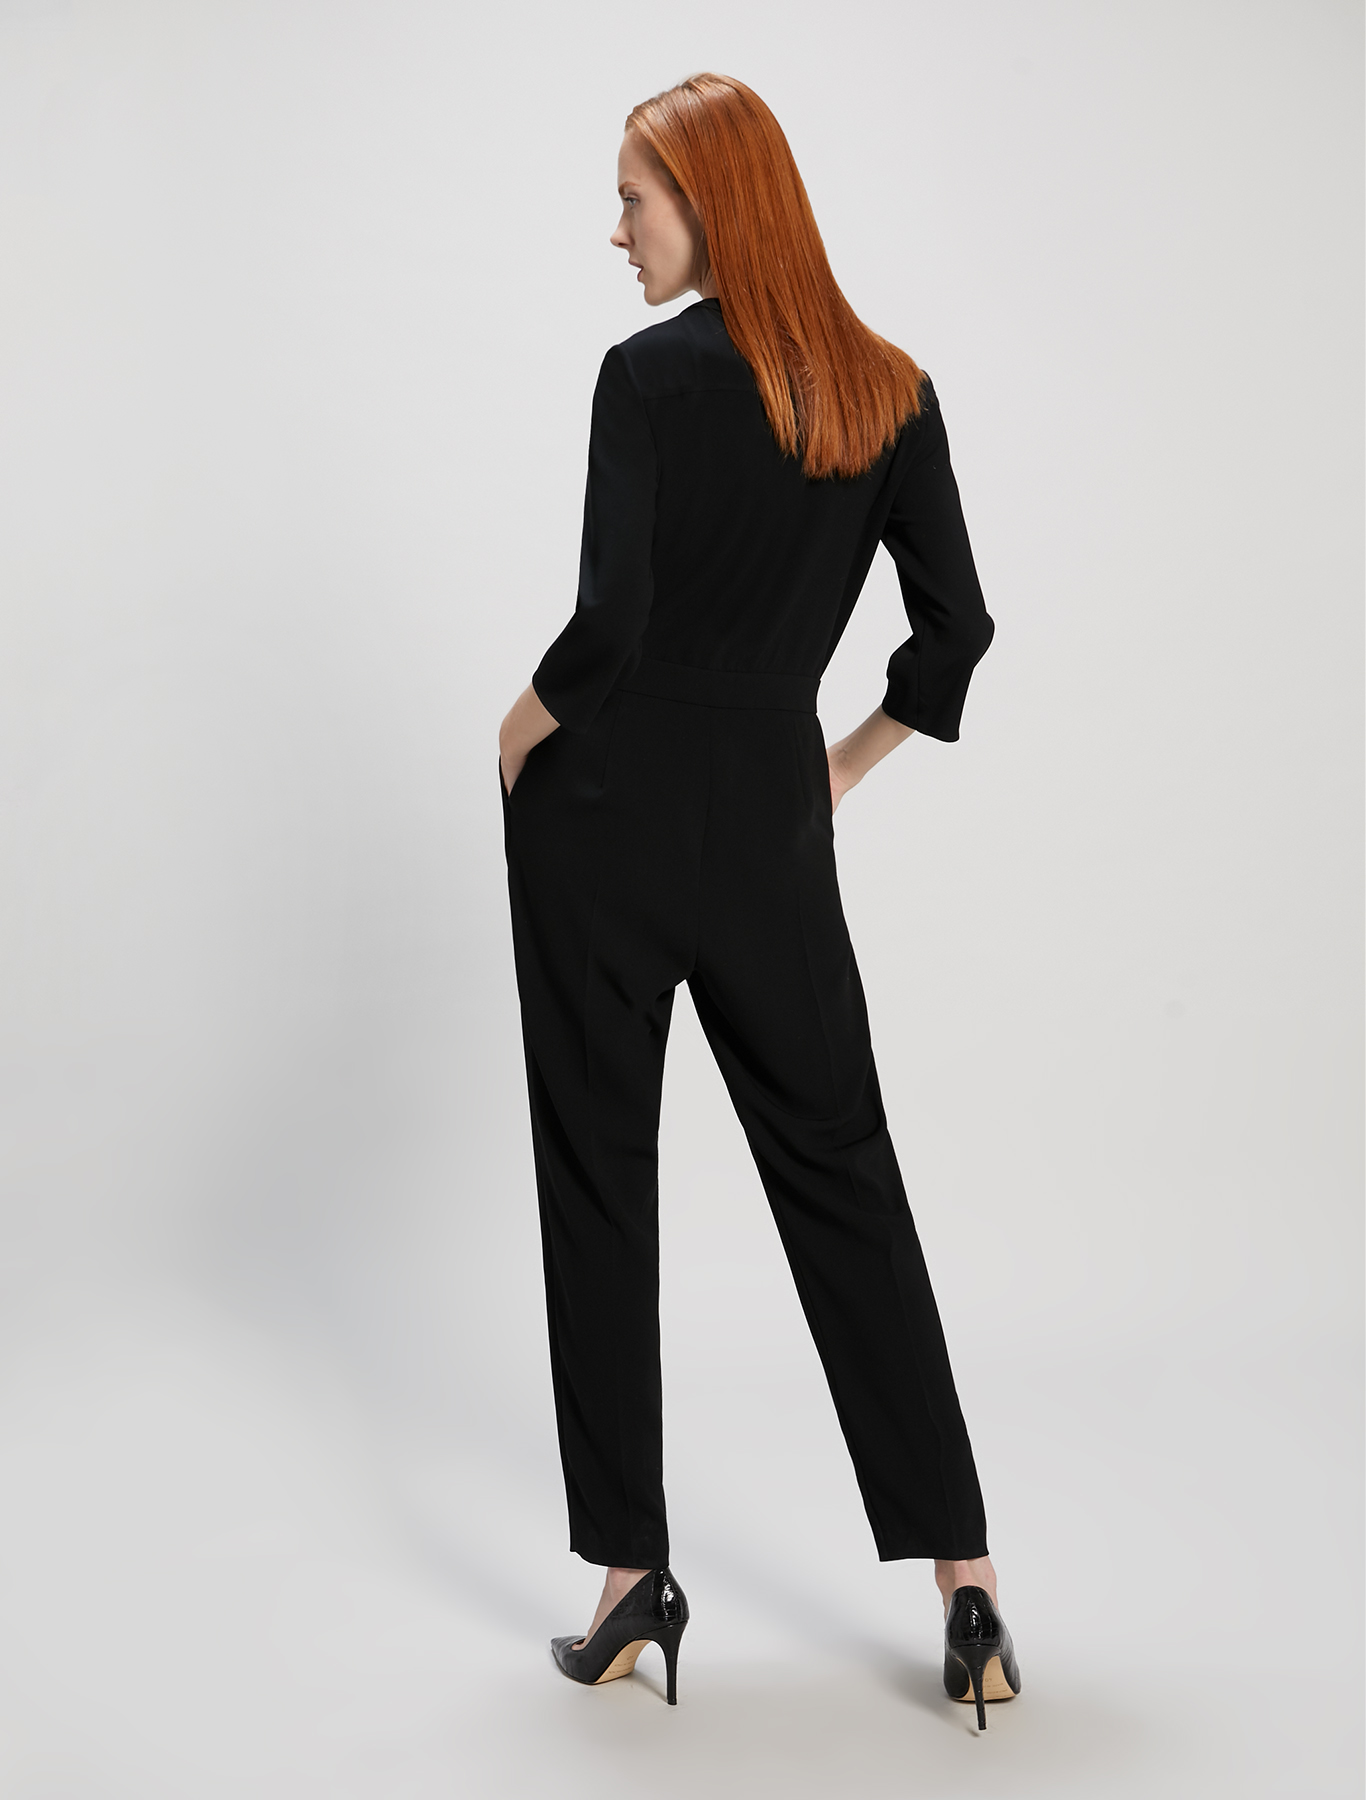 Flowing fabric jumpsuit - black - pennyblack